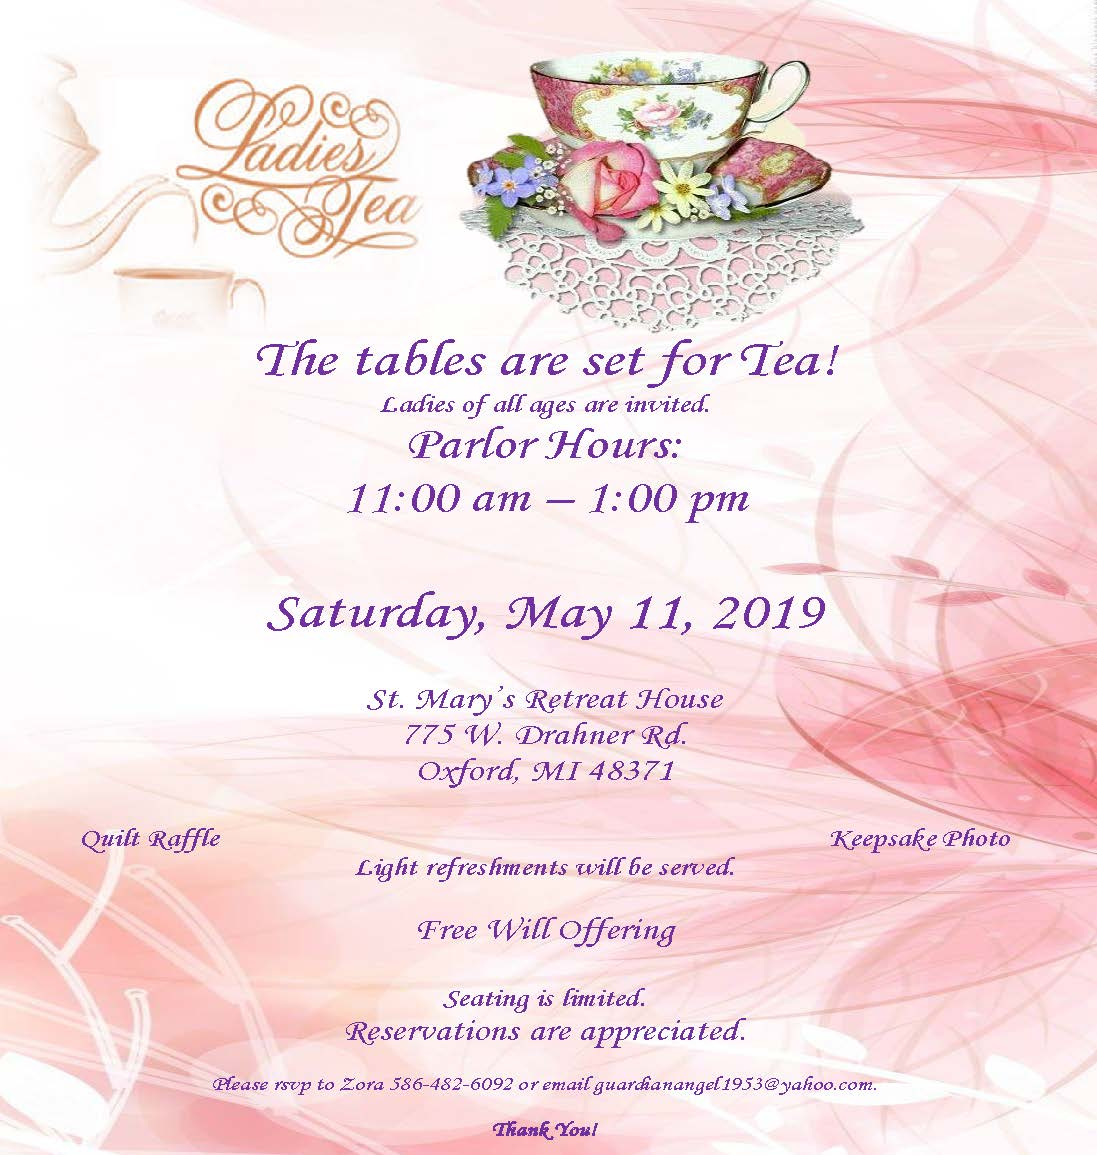 tea-flyer-2019-draft-1-zmd - St  Mary's Retreat House